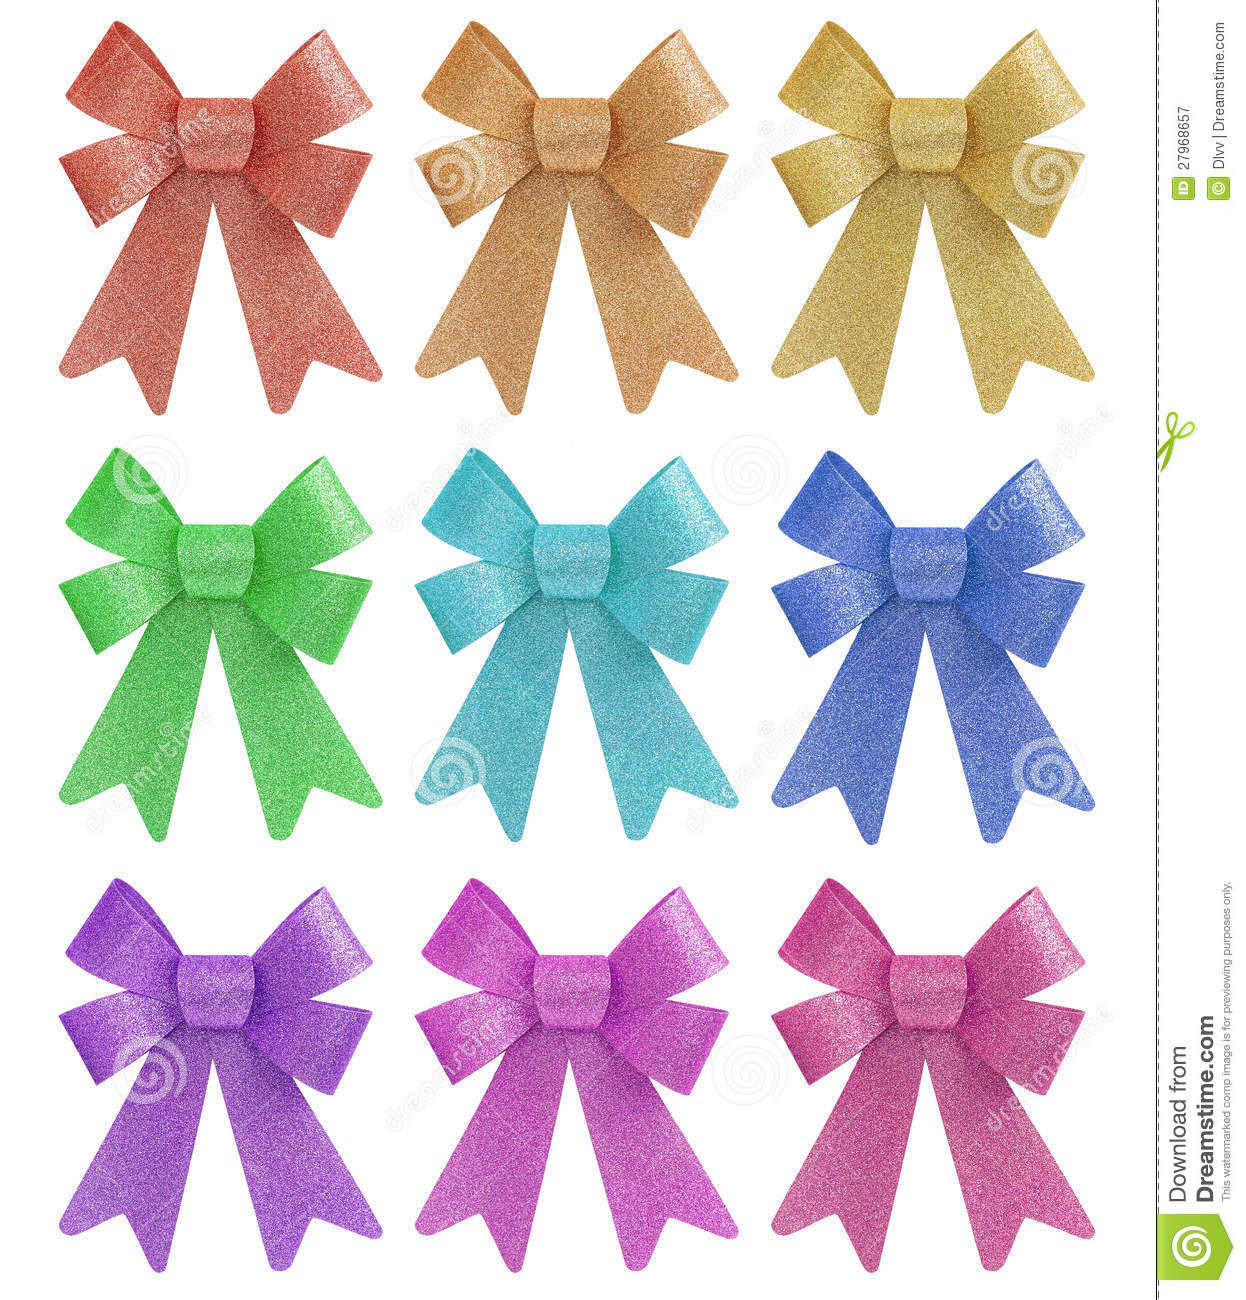 Tinted Pastel Colors Glitter Gift Bow Set Royalty Free Stock